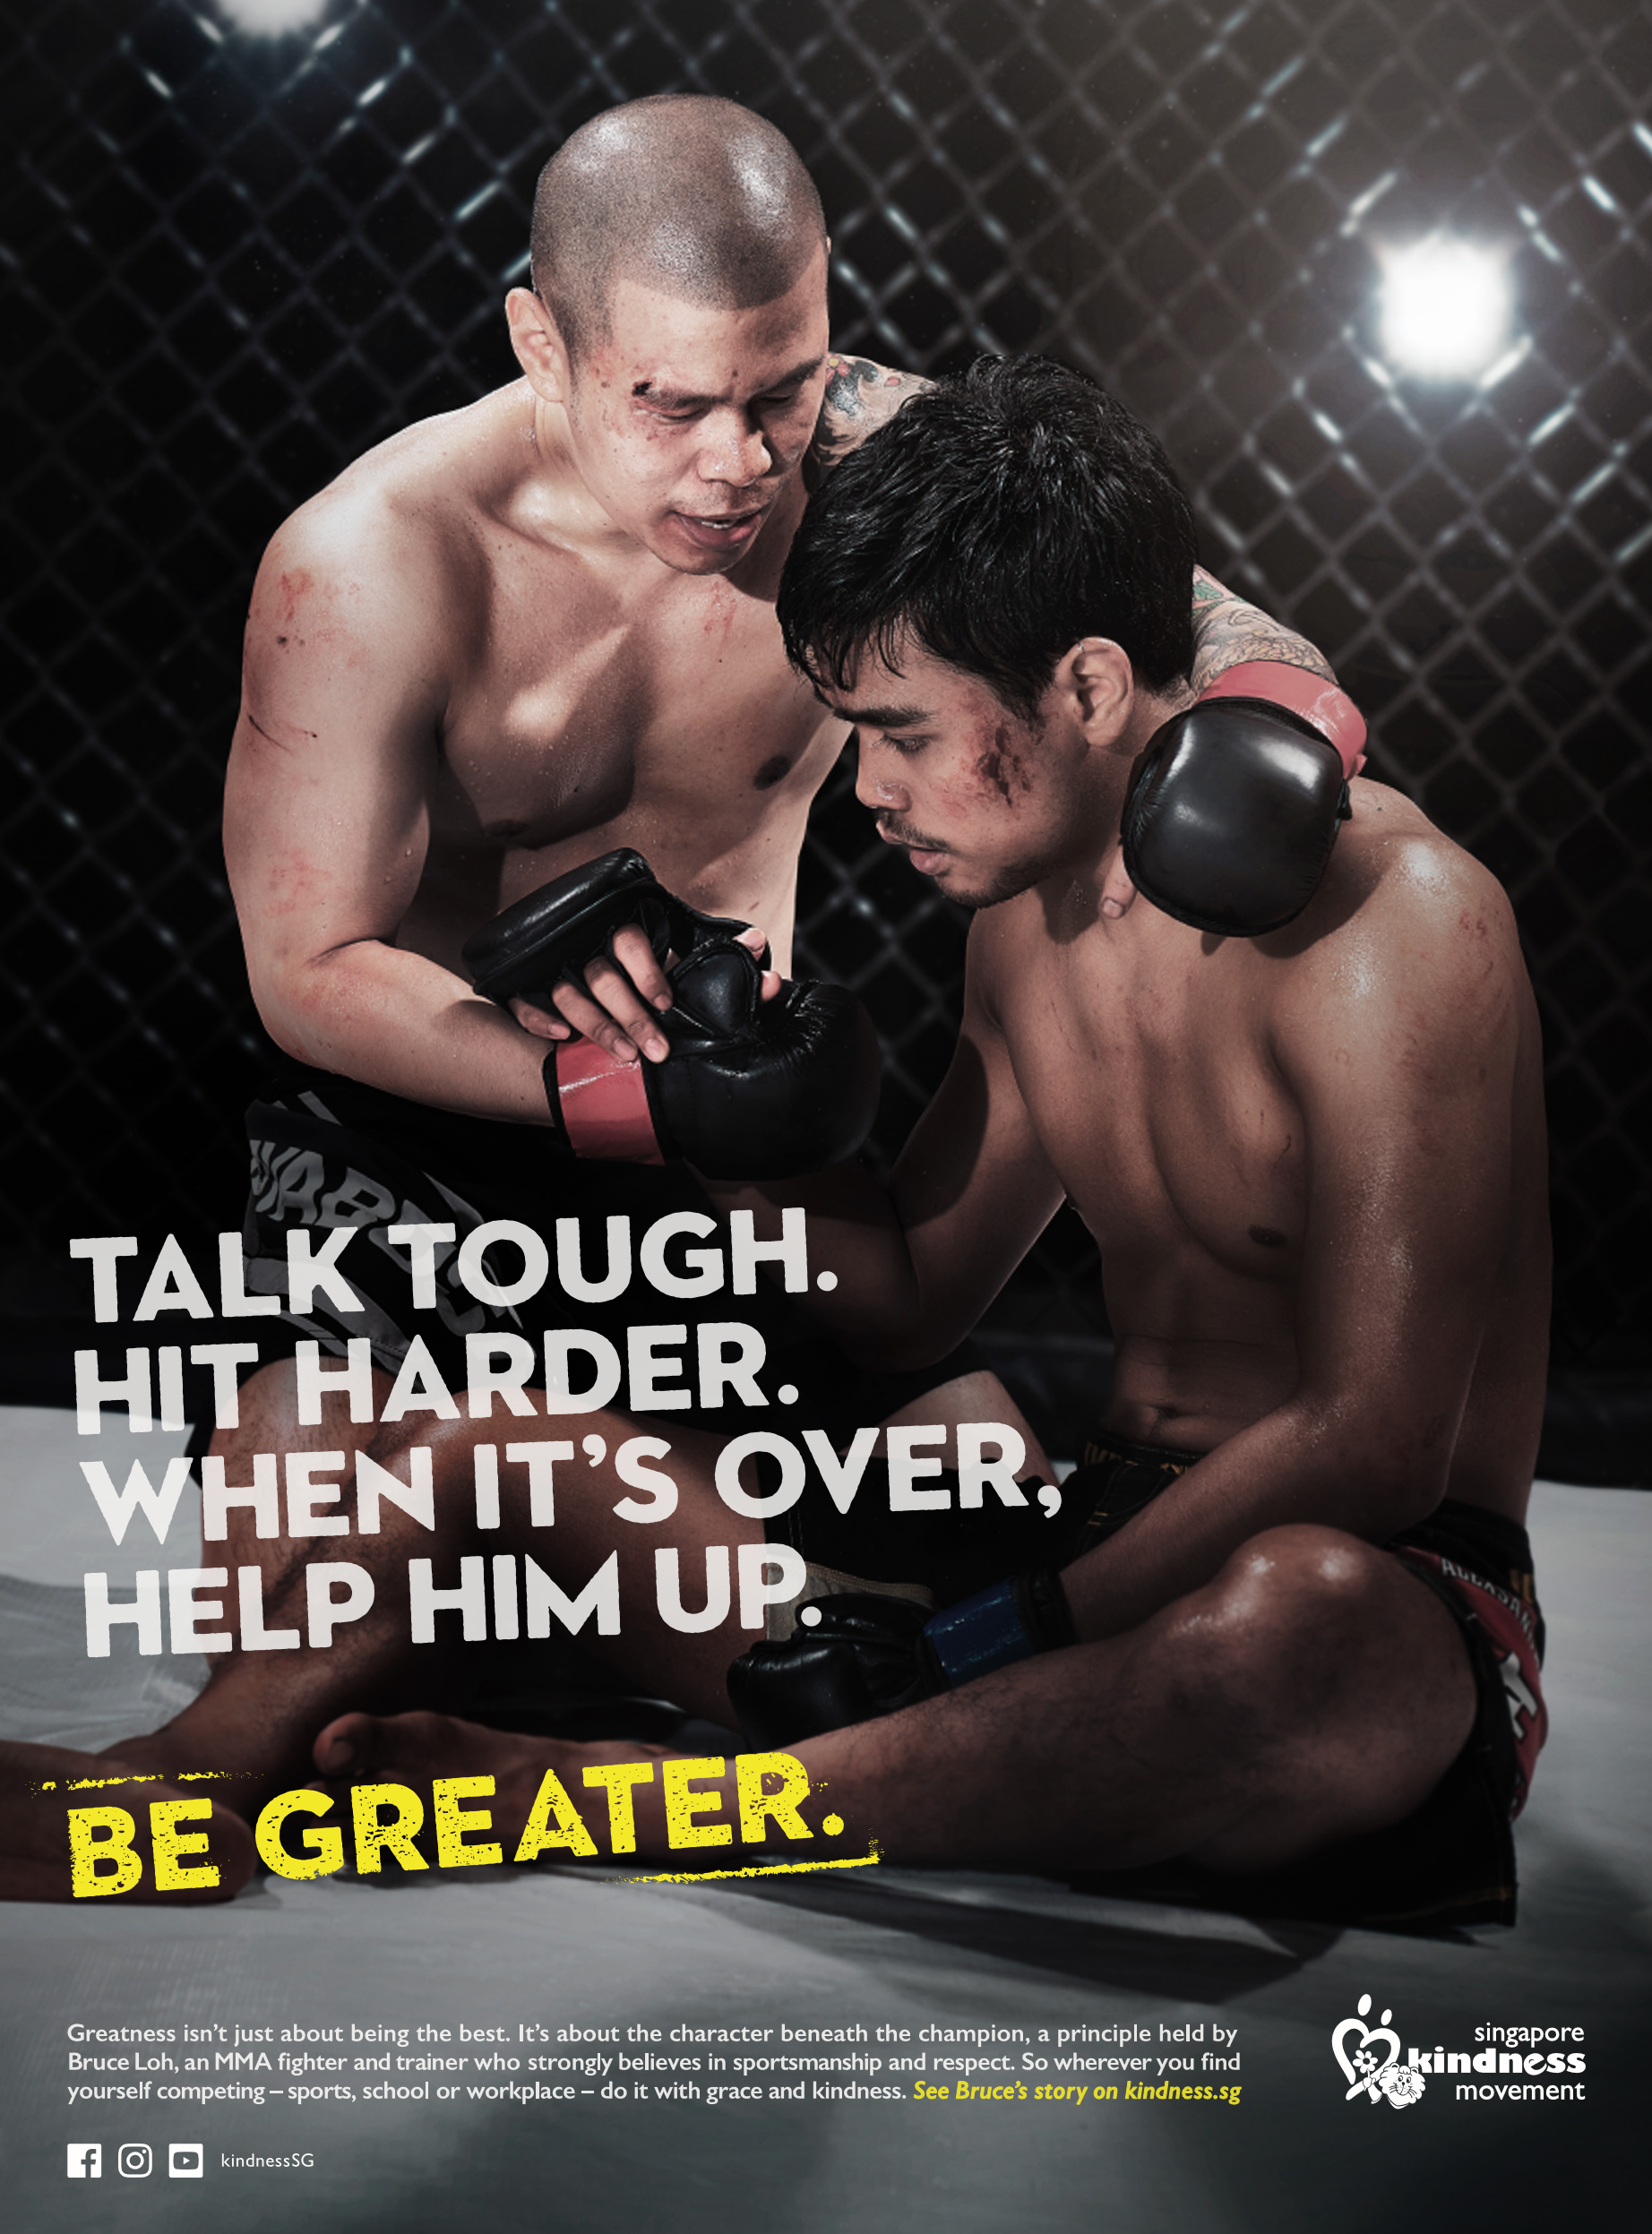 Singapore Kindness Movement Print Ad - Be Greater, 4